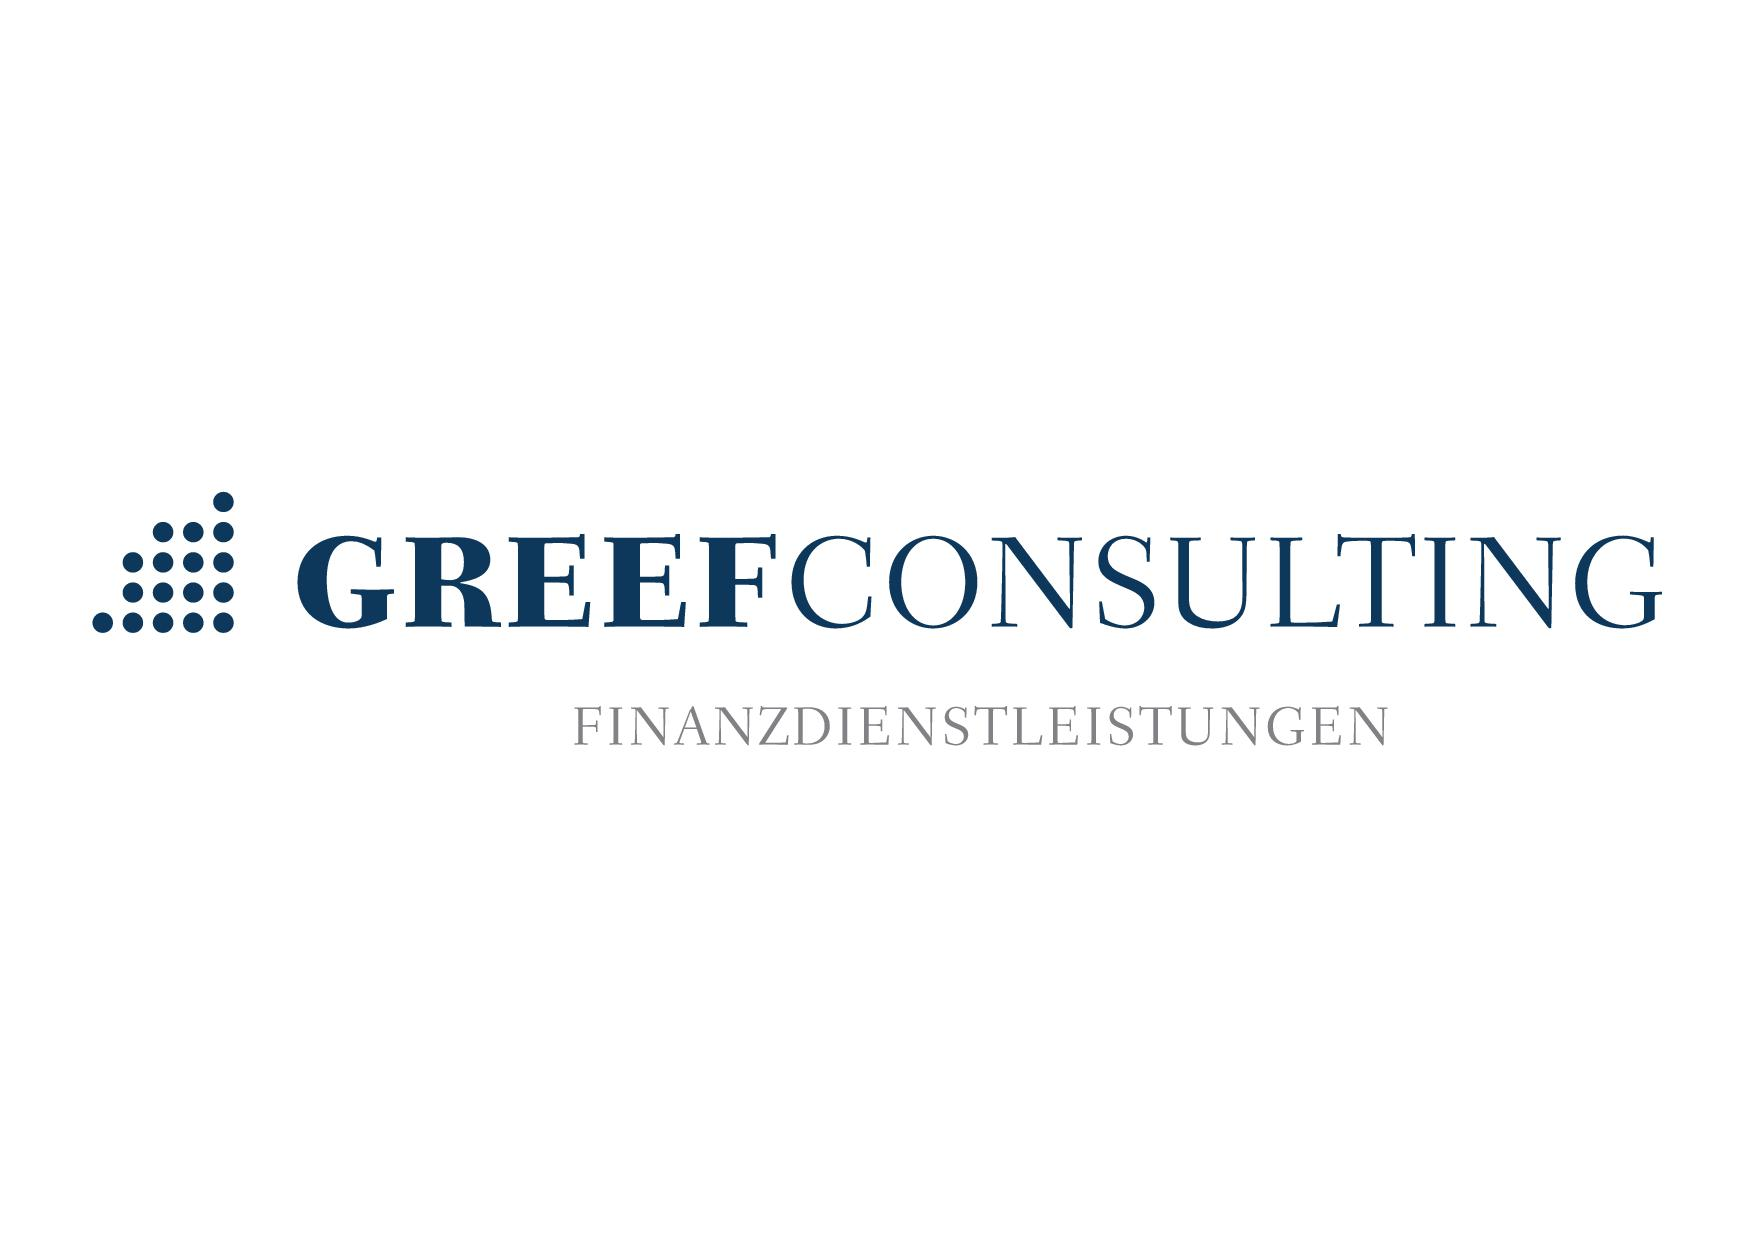 GREEF CONSULTING GmbH